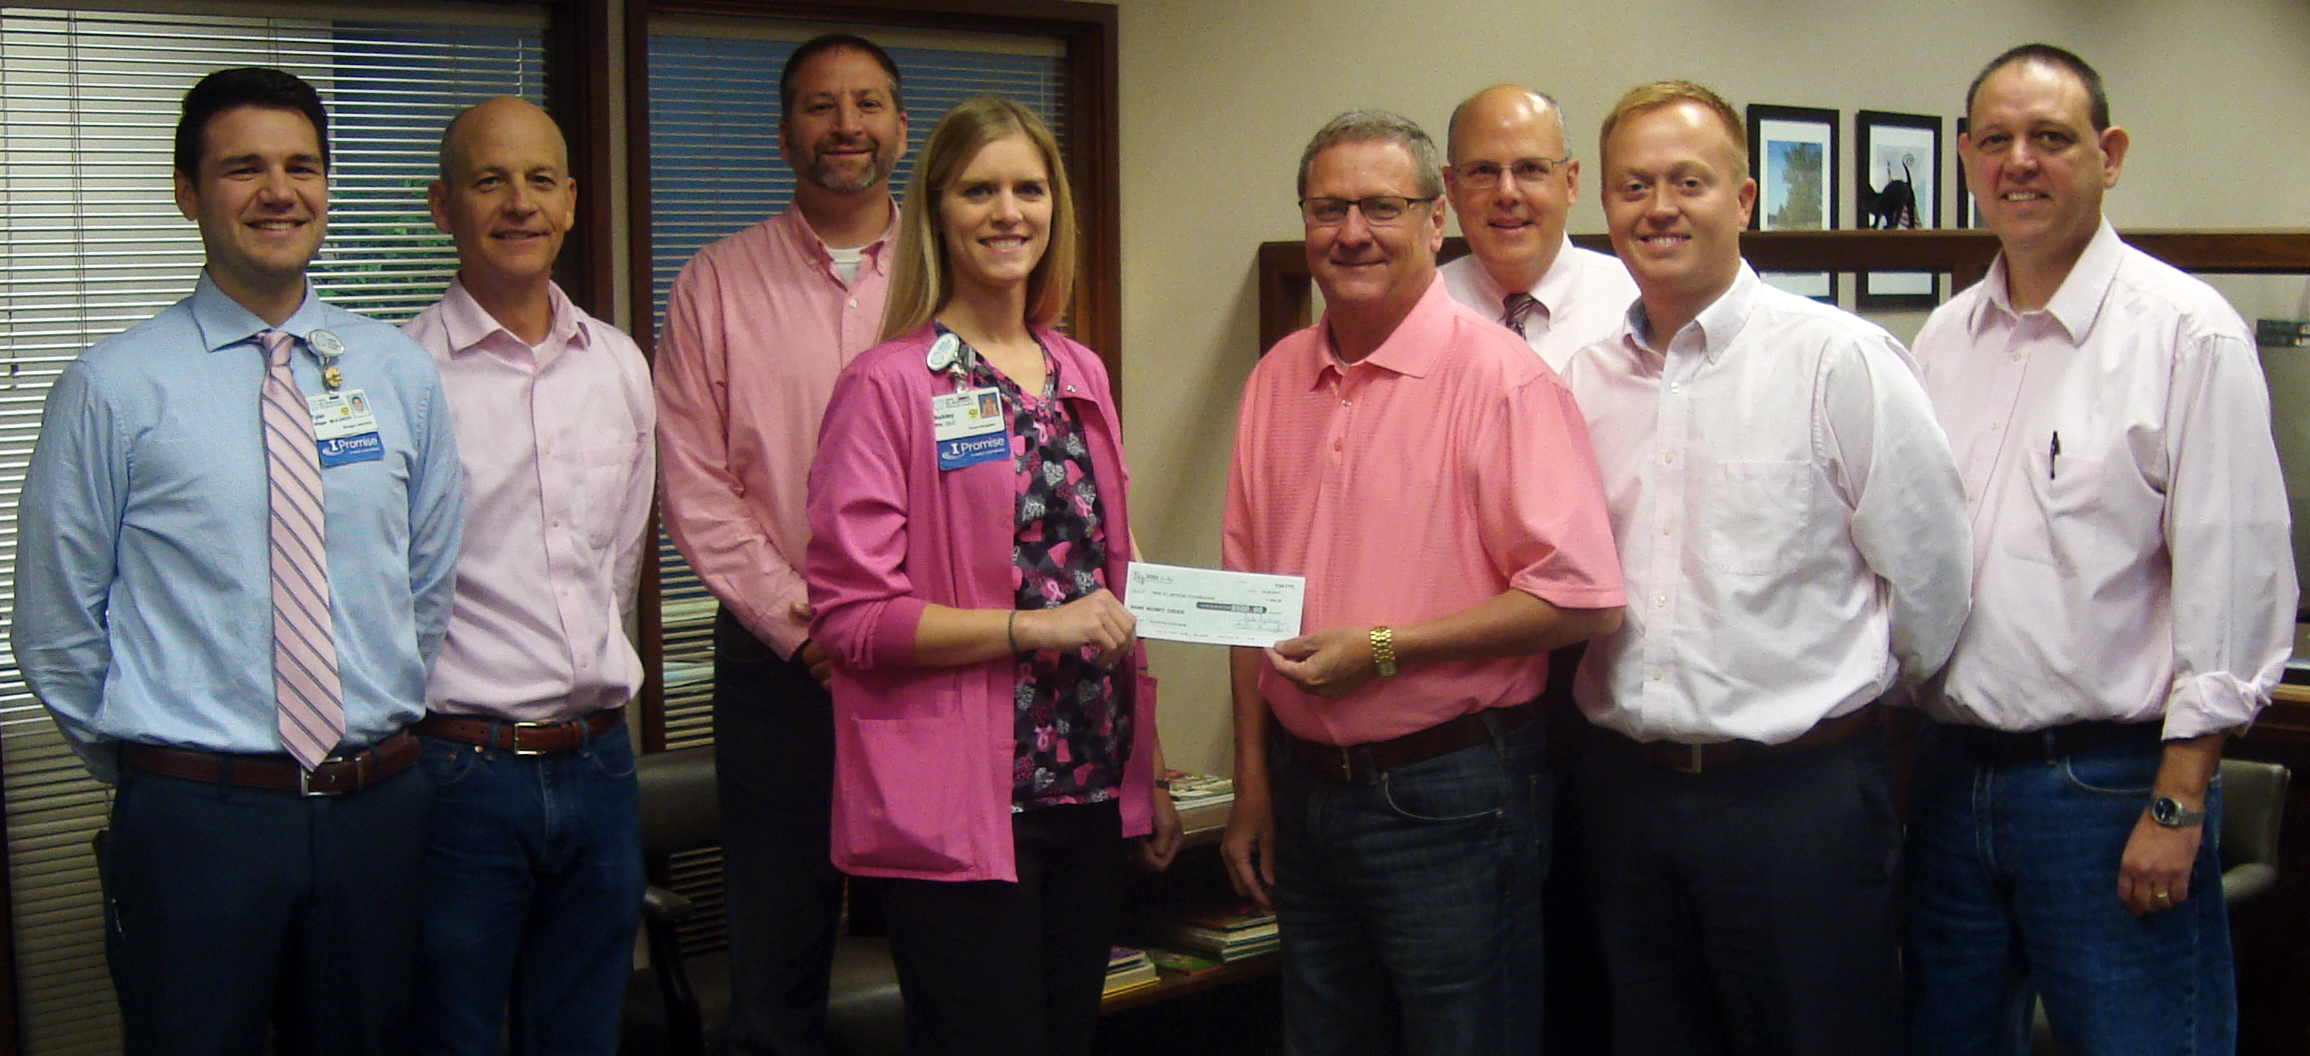 HSHS St. Anthony's Foundation Receives Donation From Teutopolis State Bank in Honor of Breast Cancer Awareness